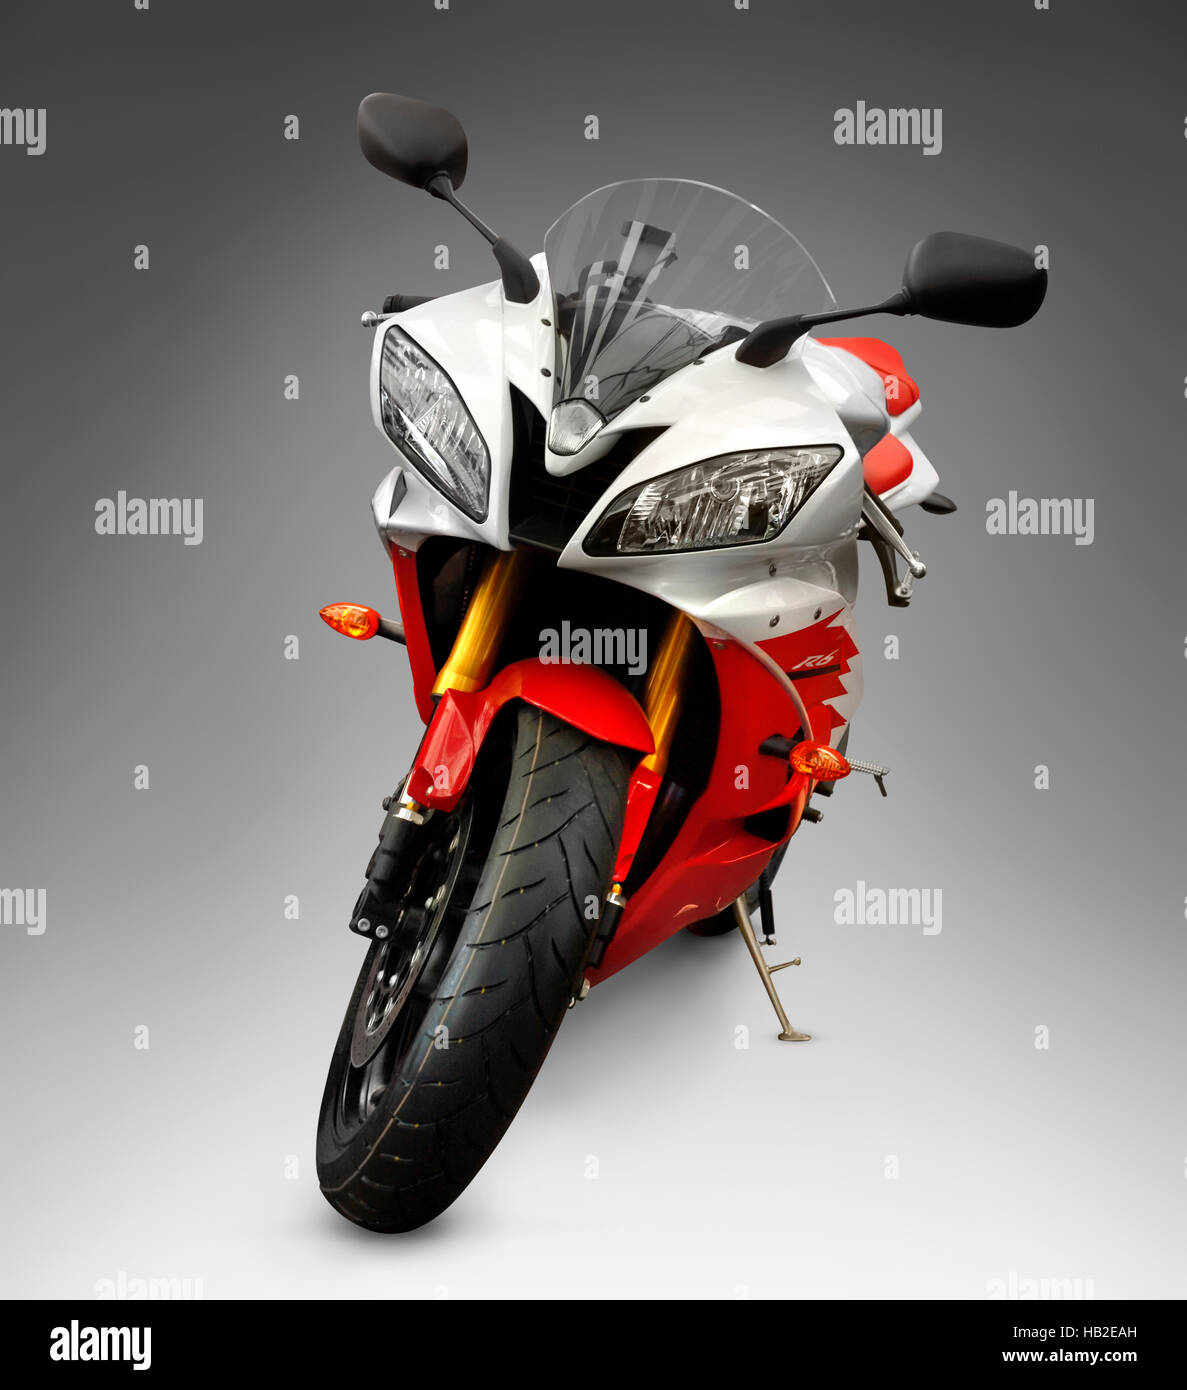 Middleweight supersport bike Yamaha YZF-R6 2006 red-white racing motorcycle - Stock Image